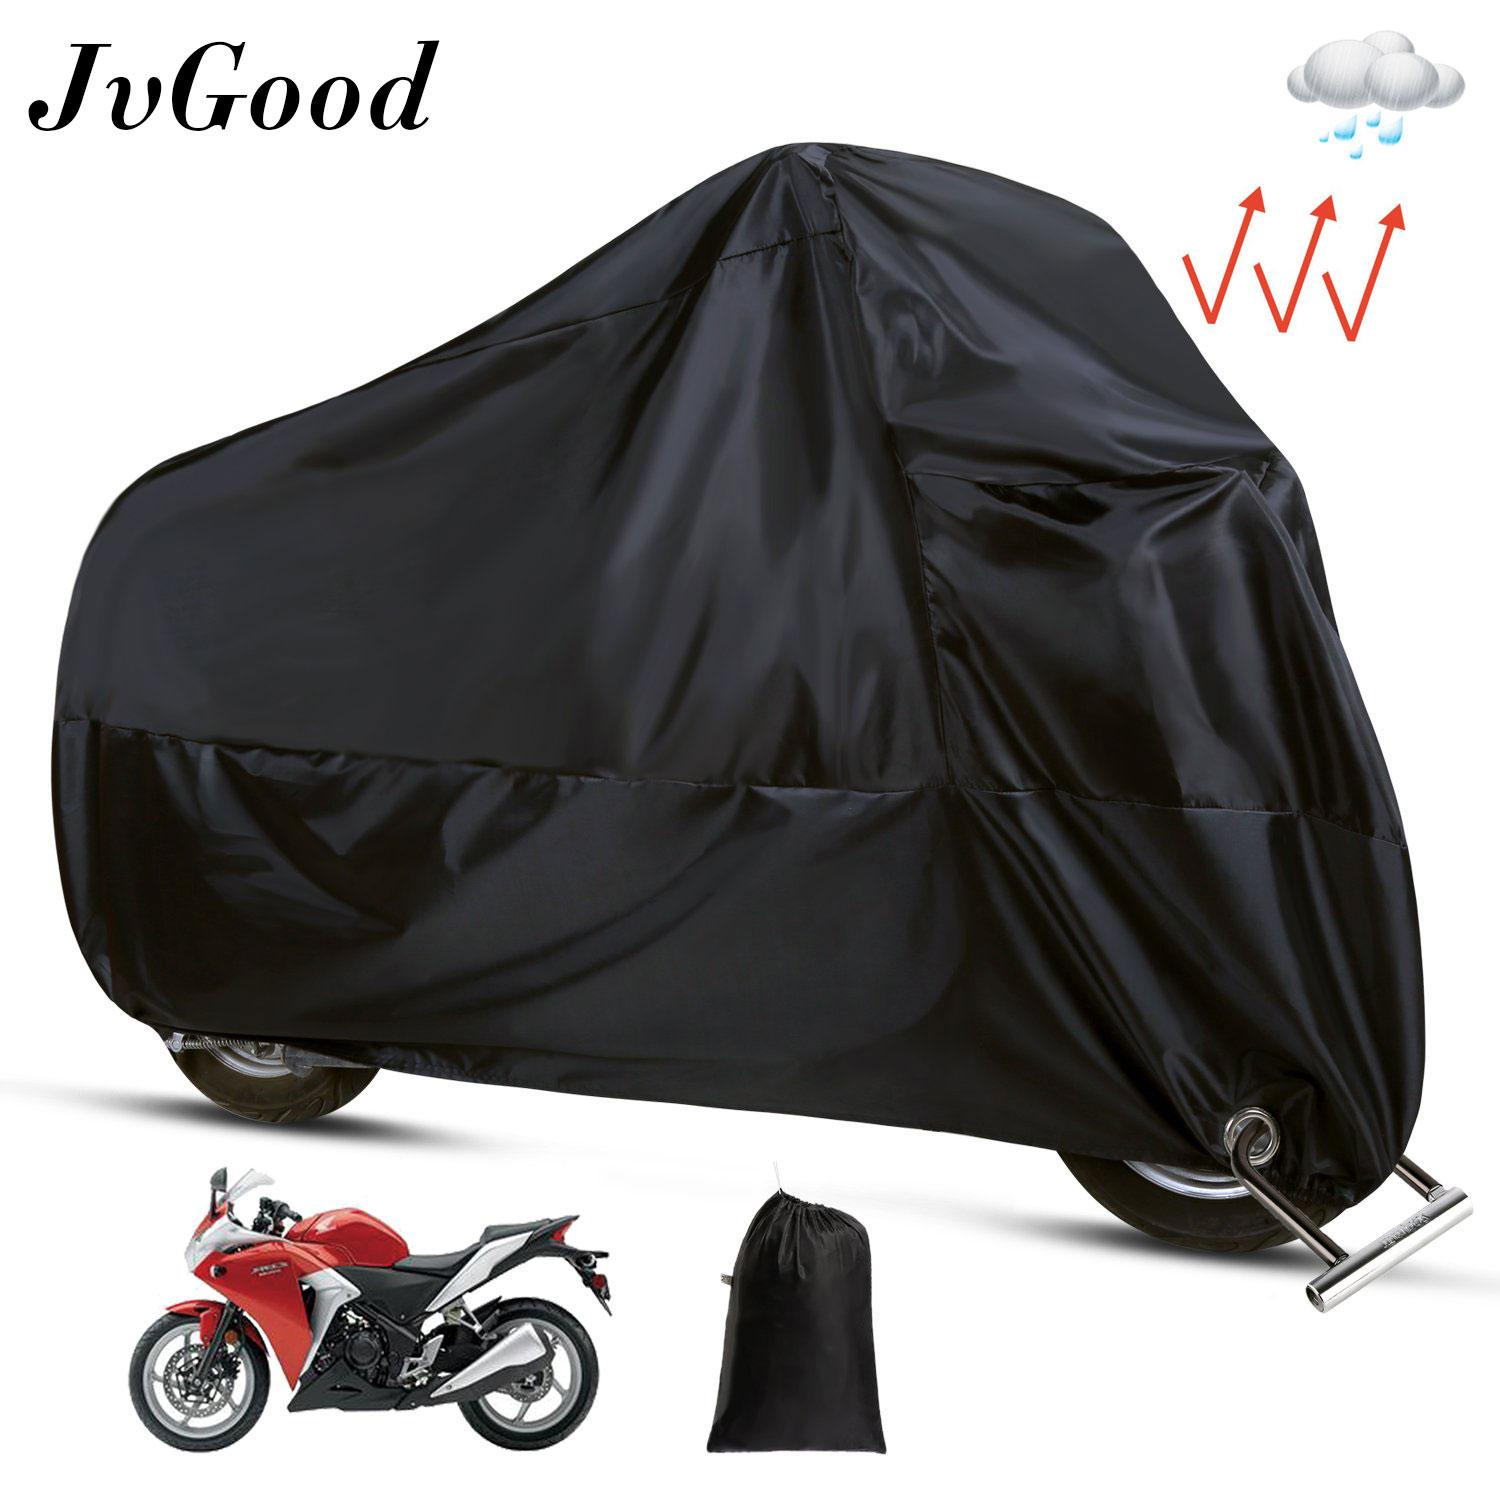 JvGood Motorcycle Cover, Motorbike Waterproof Cover Protector Case Cover Rain Protection Breathable UV Sun Shade